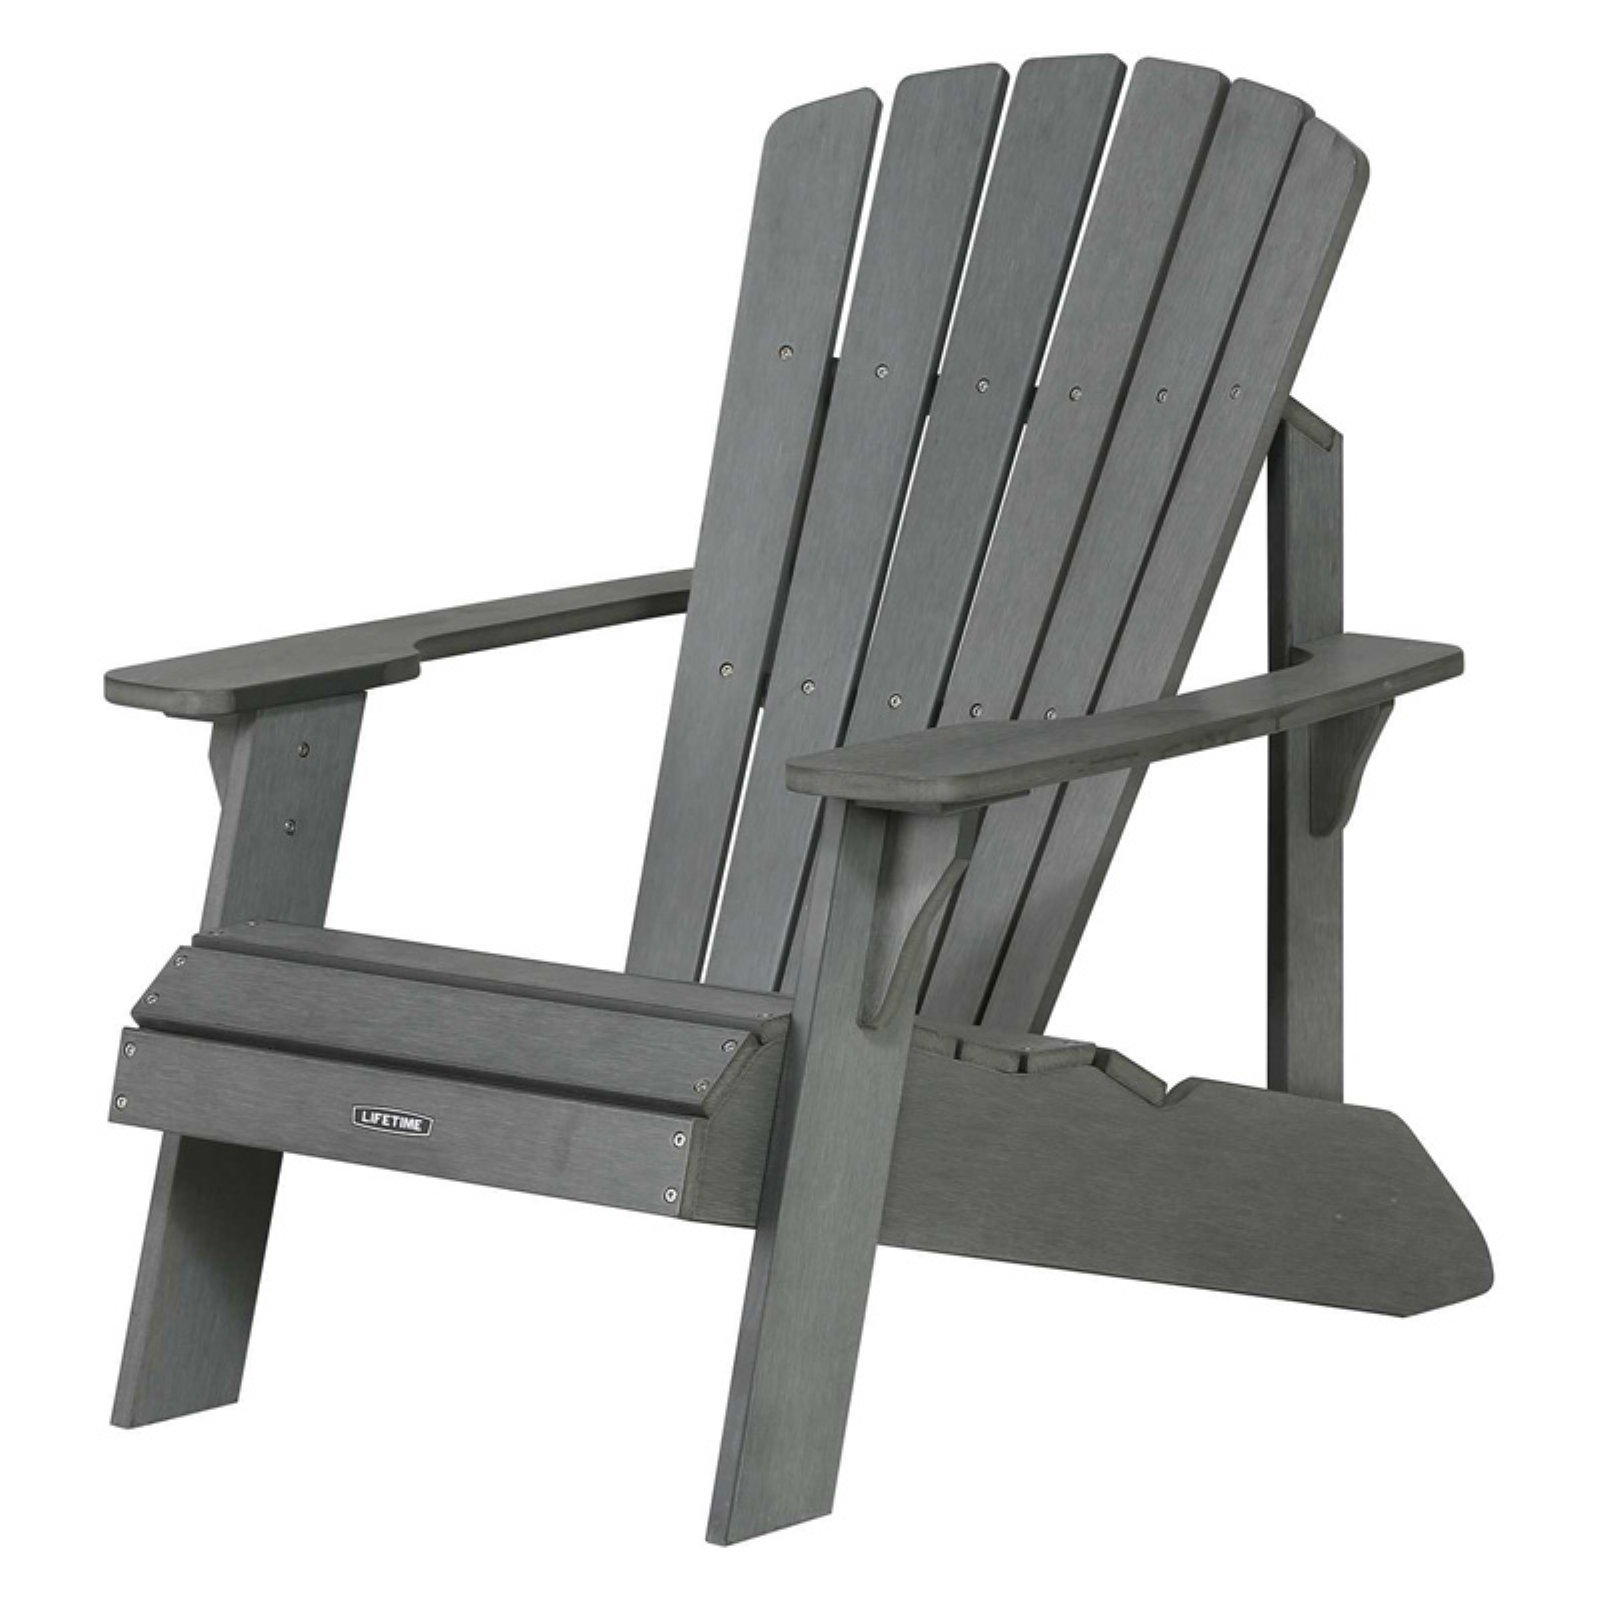 Lifetime Adirondack Chairs Outdoor Lifetime Faux Wood Adirondack Chair Products In 2019